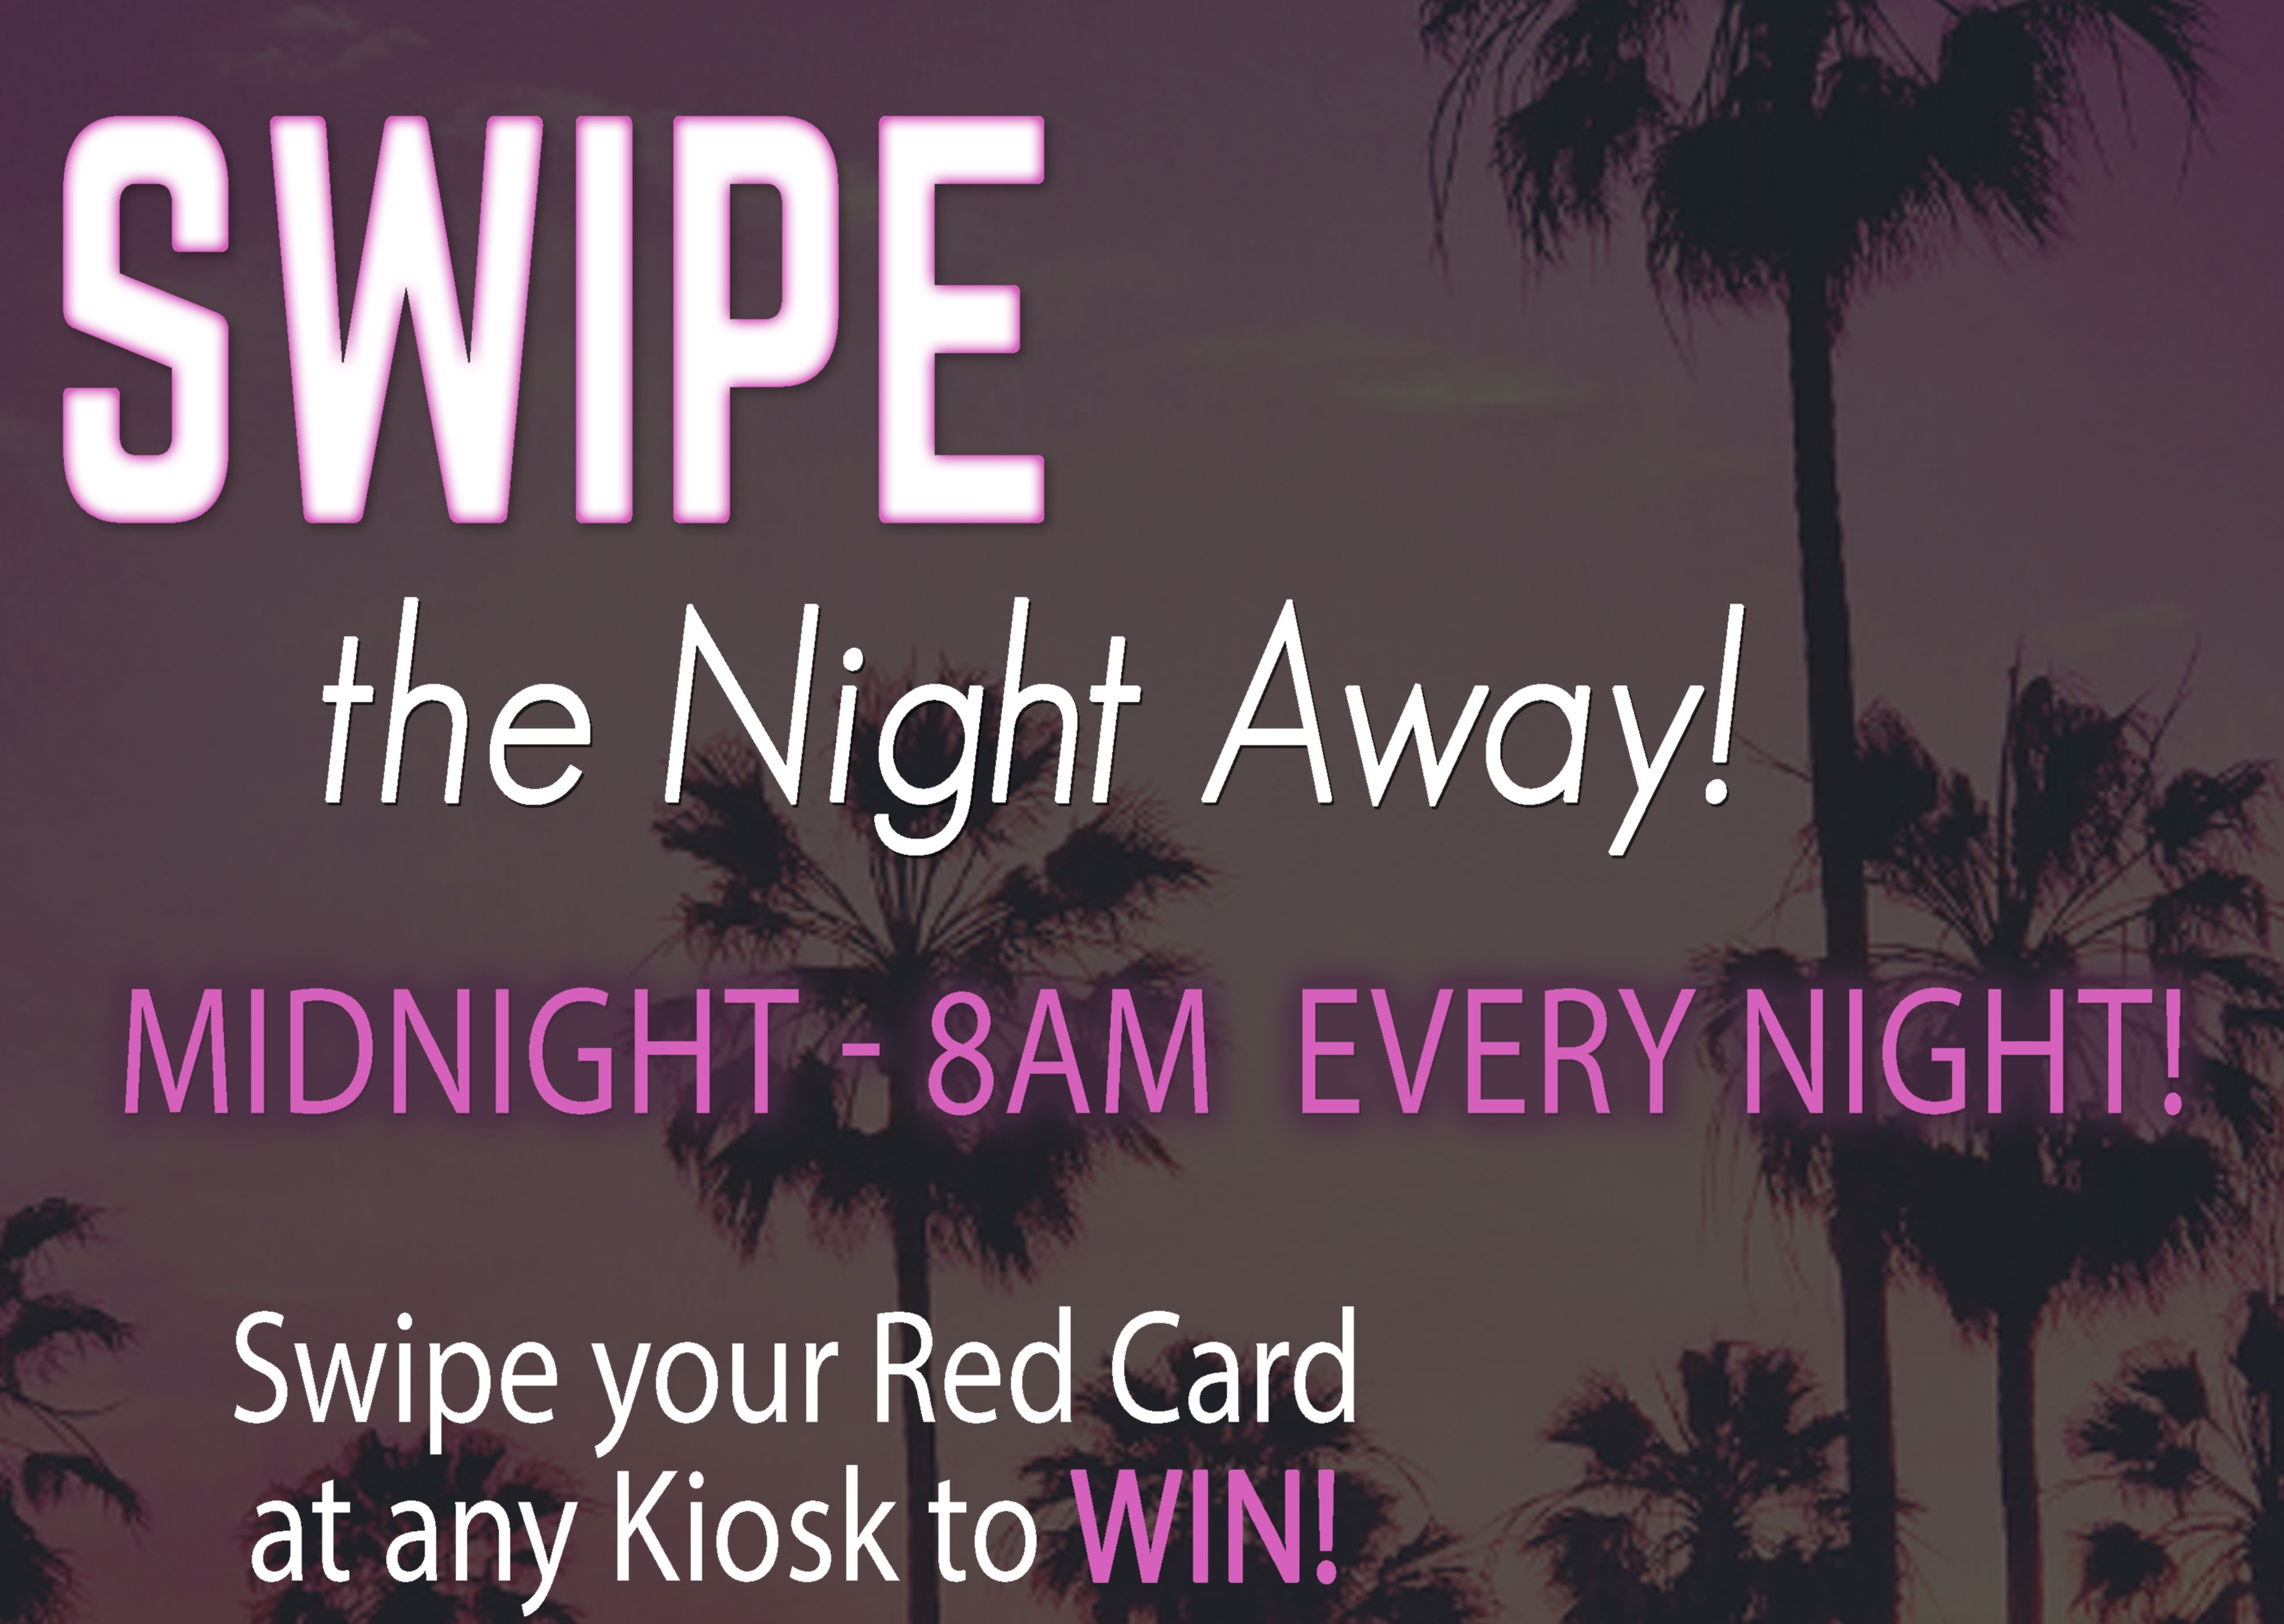 Swipe the night away 12 am to 8 am Win up to $50 Free Play